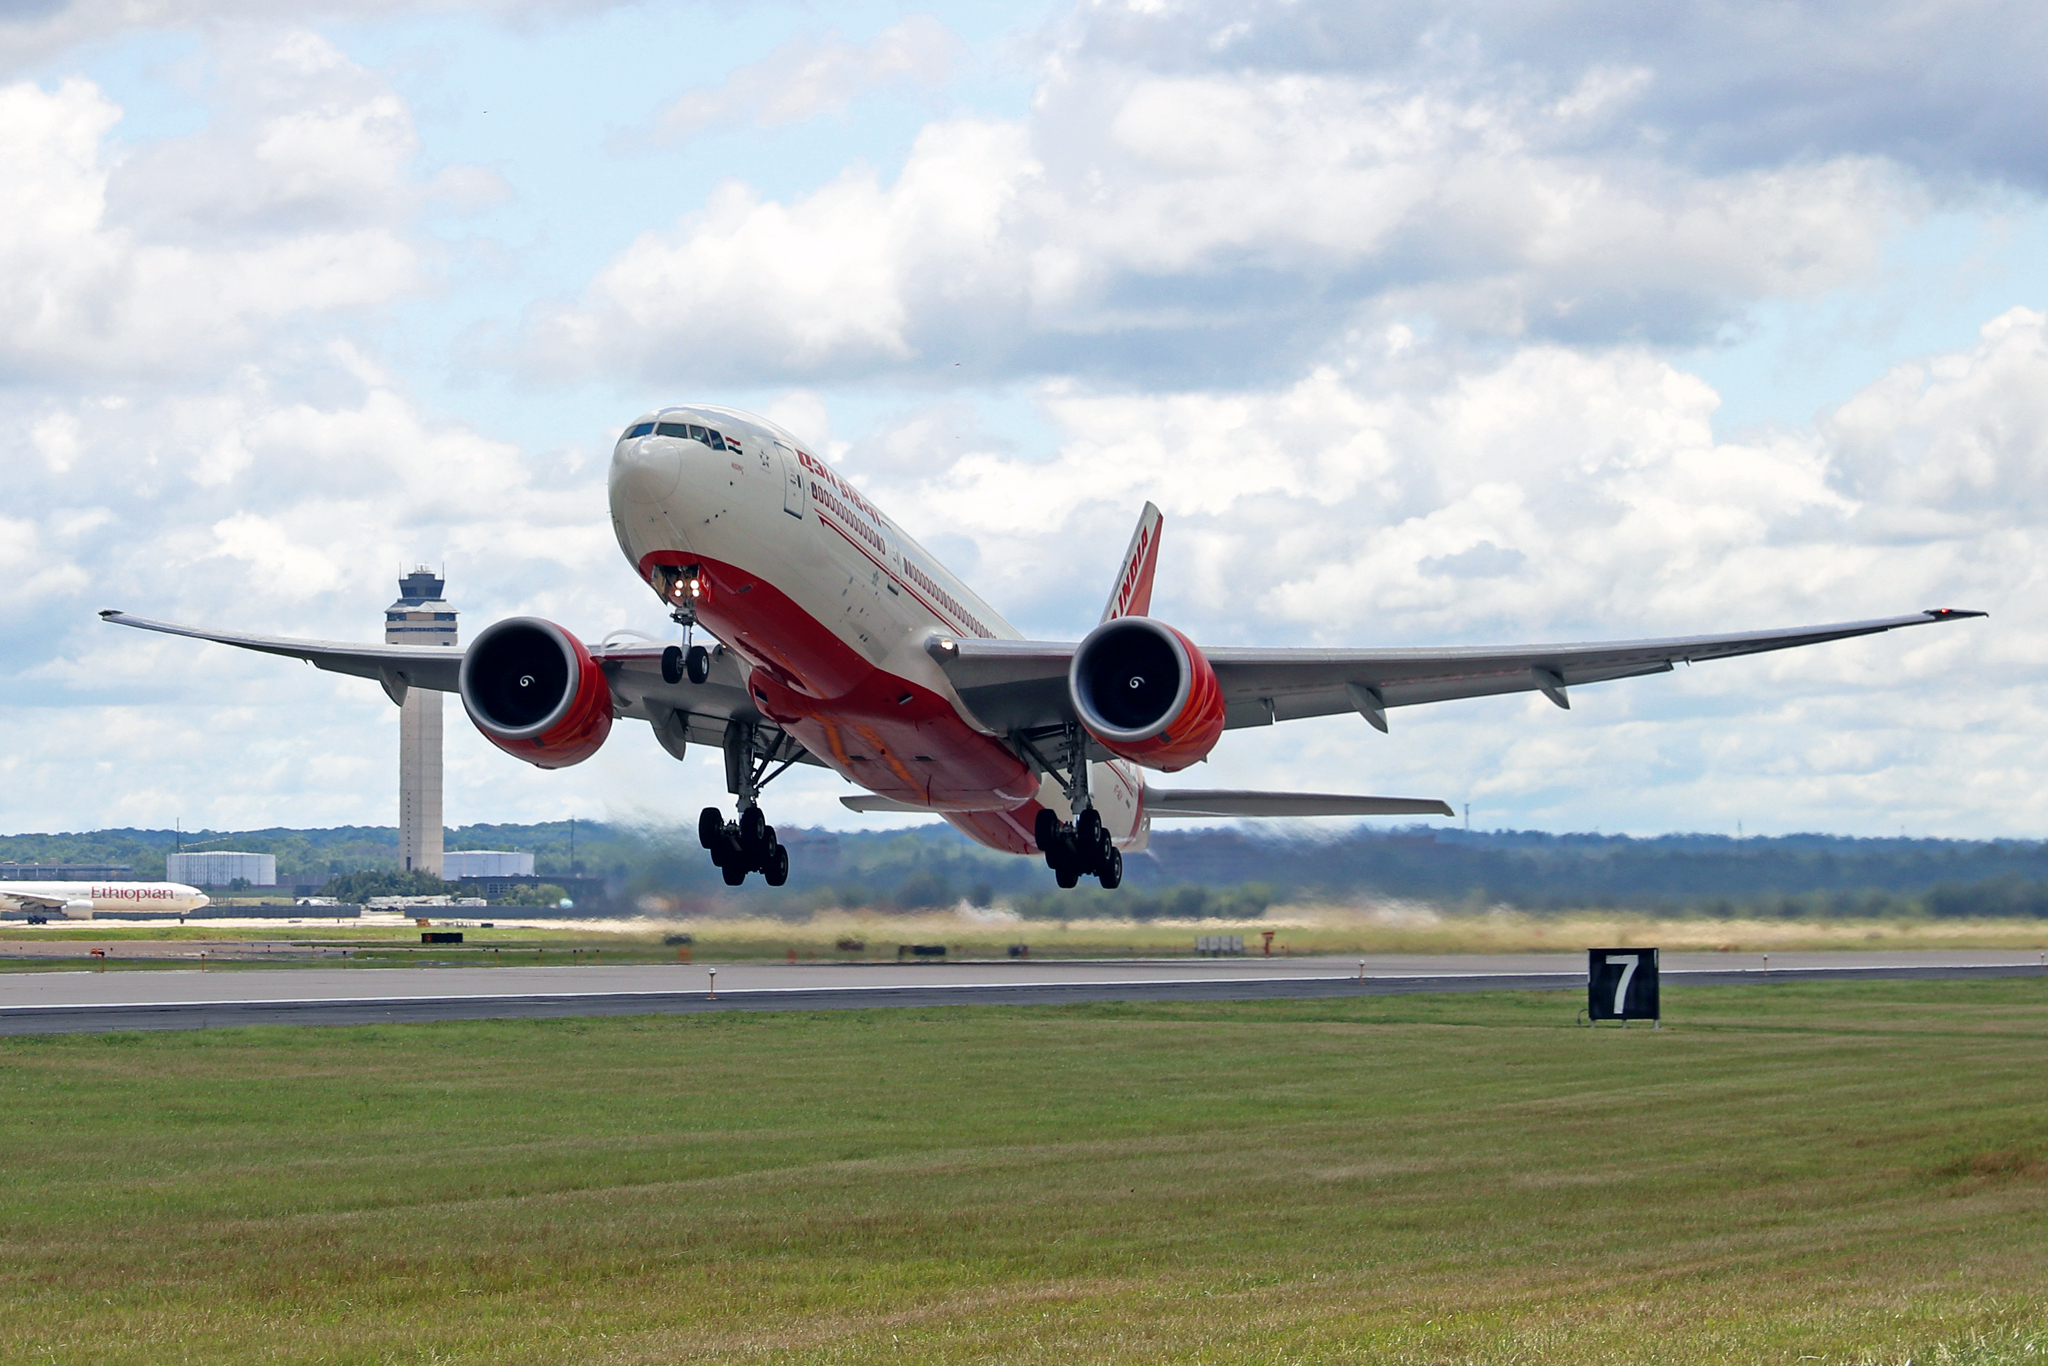 Resultado de imagen para Air India take off